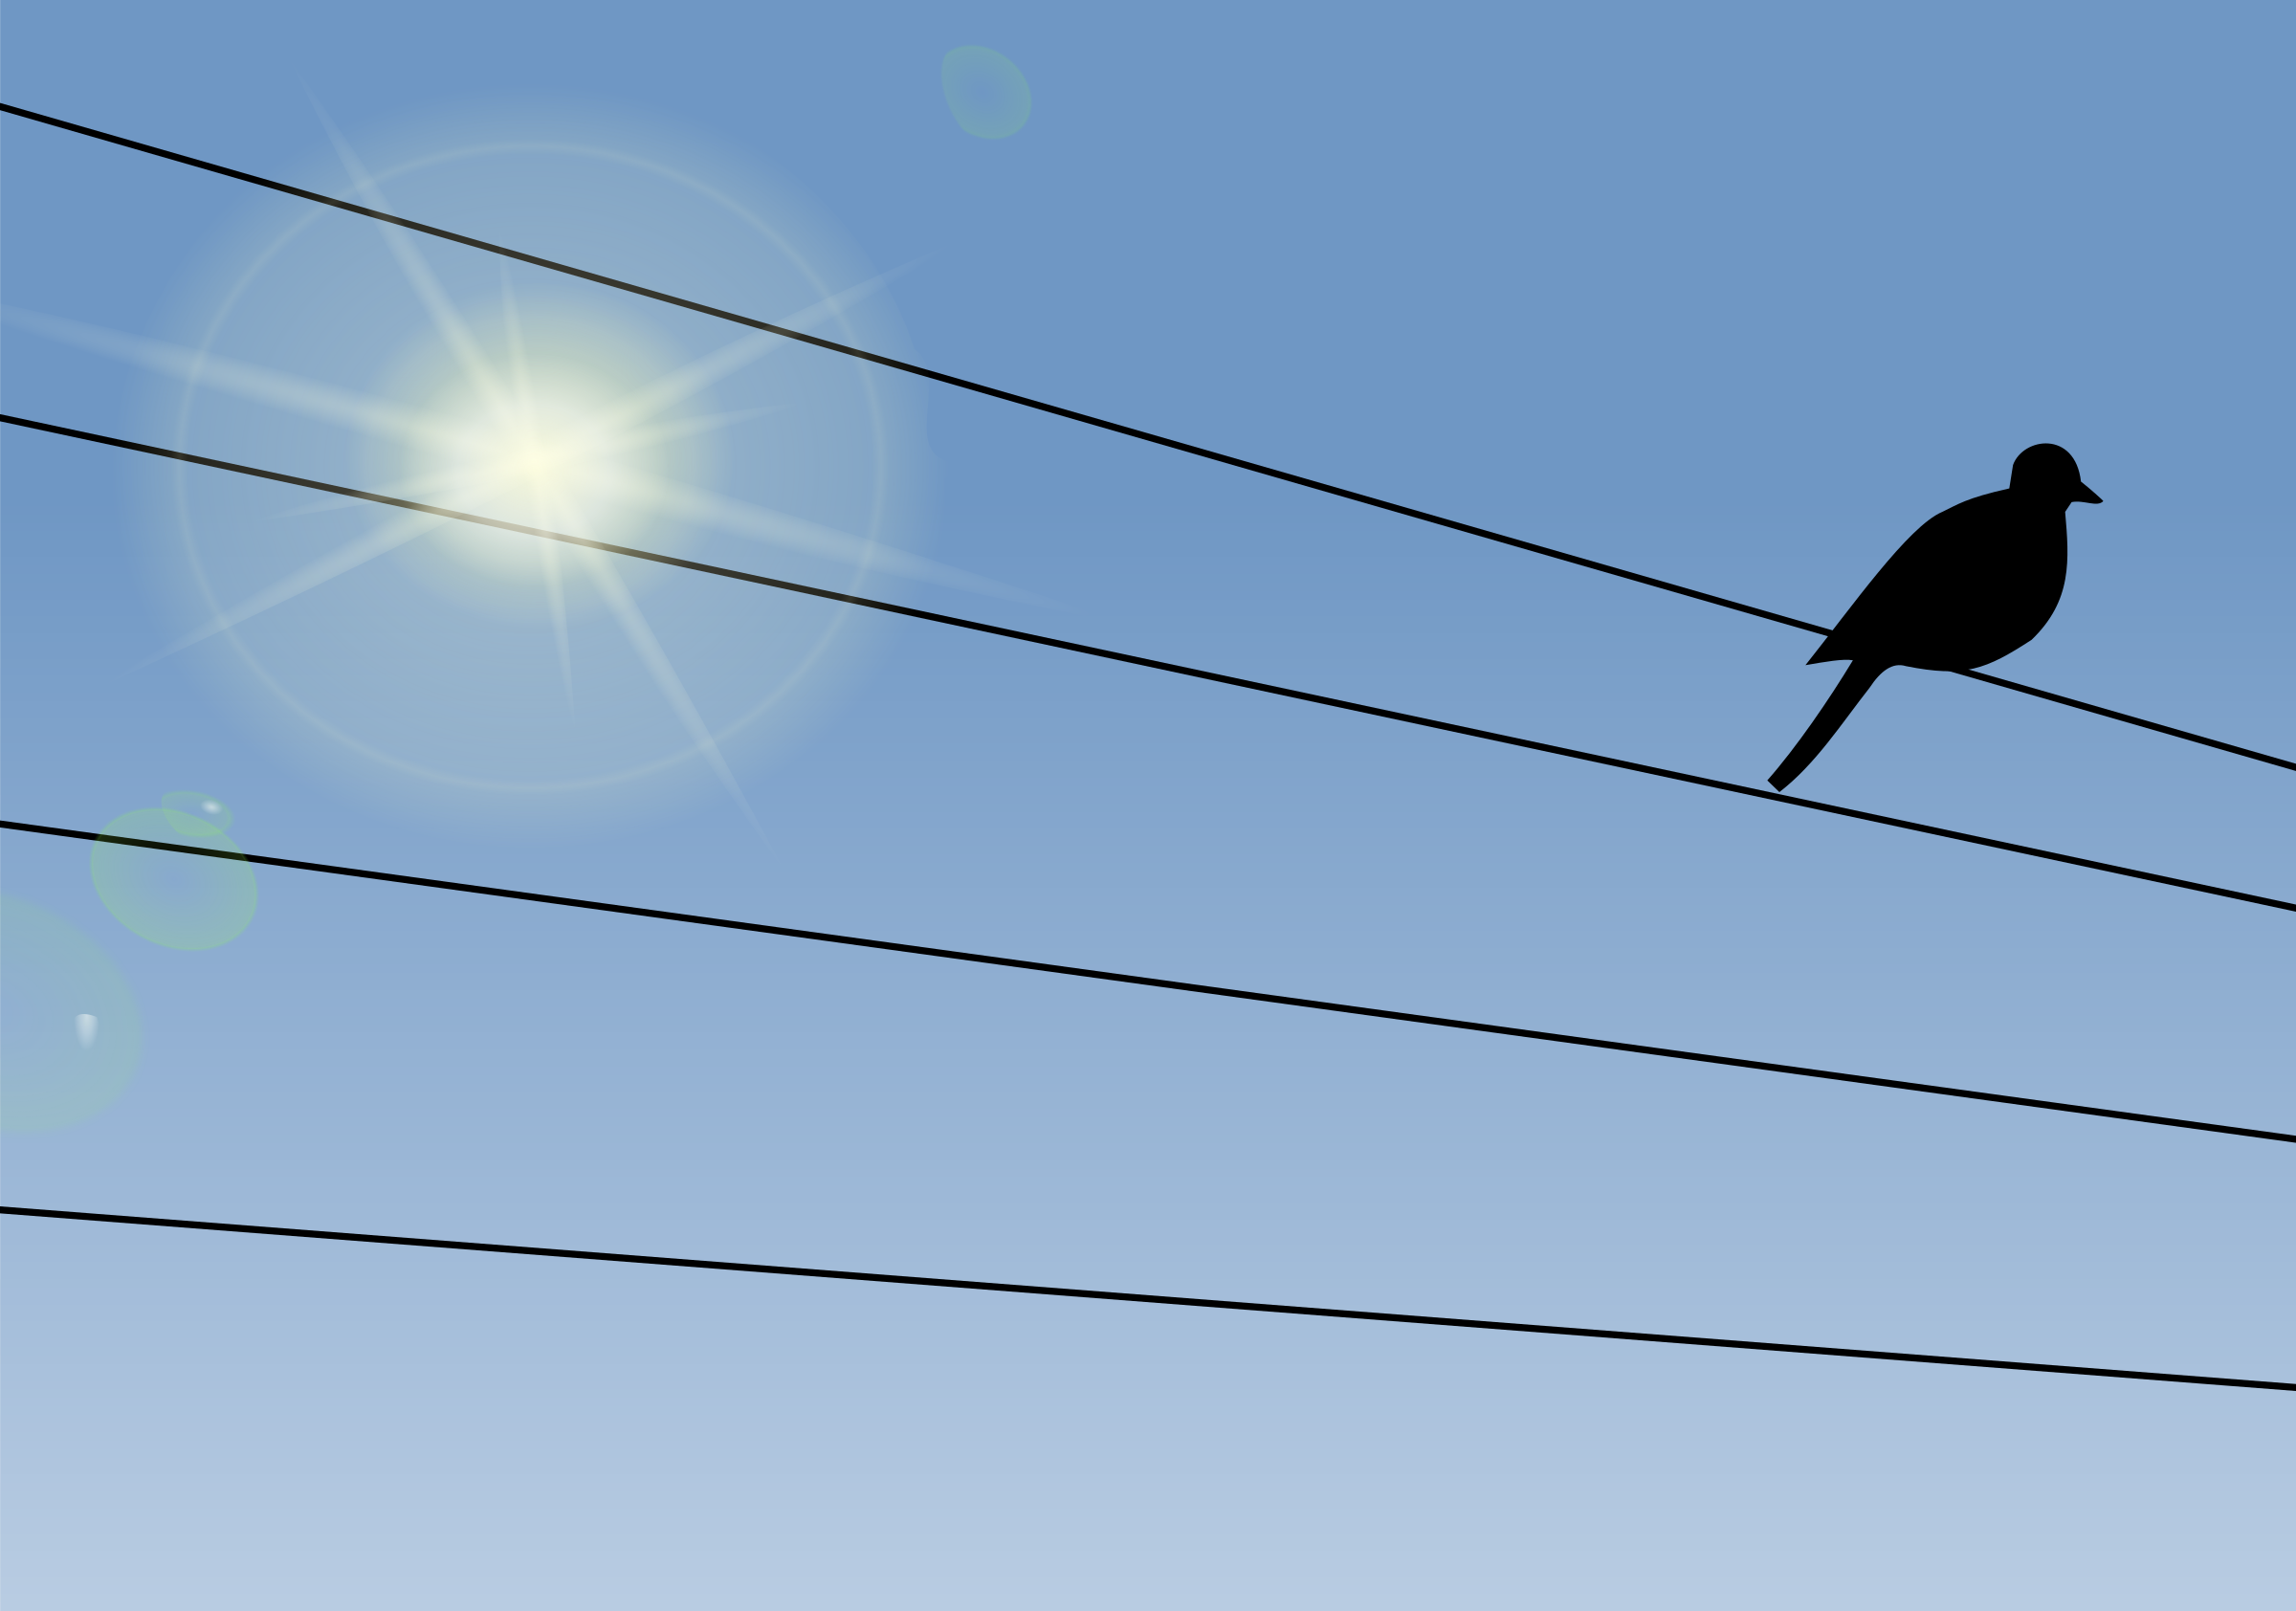 Bird on a Wire - Day by j4p4n